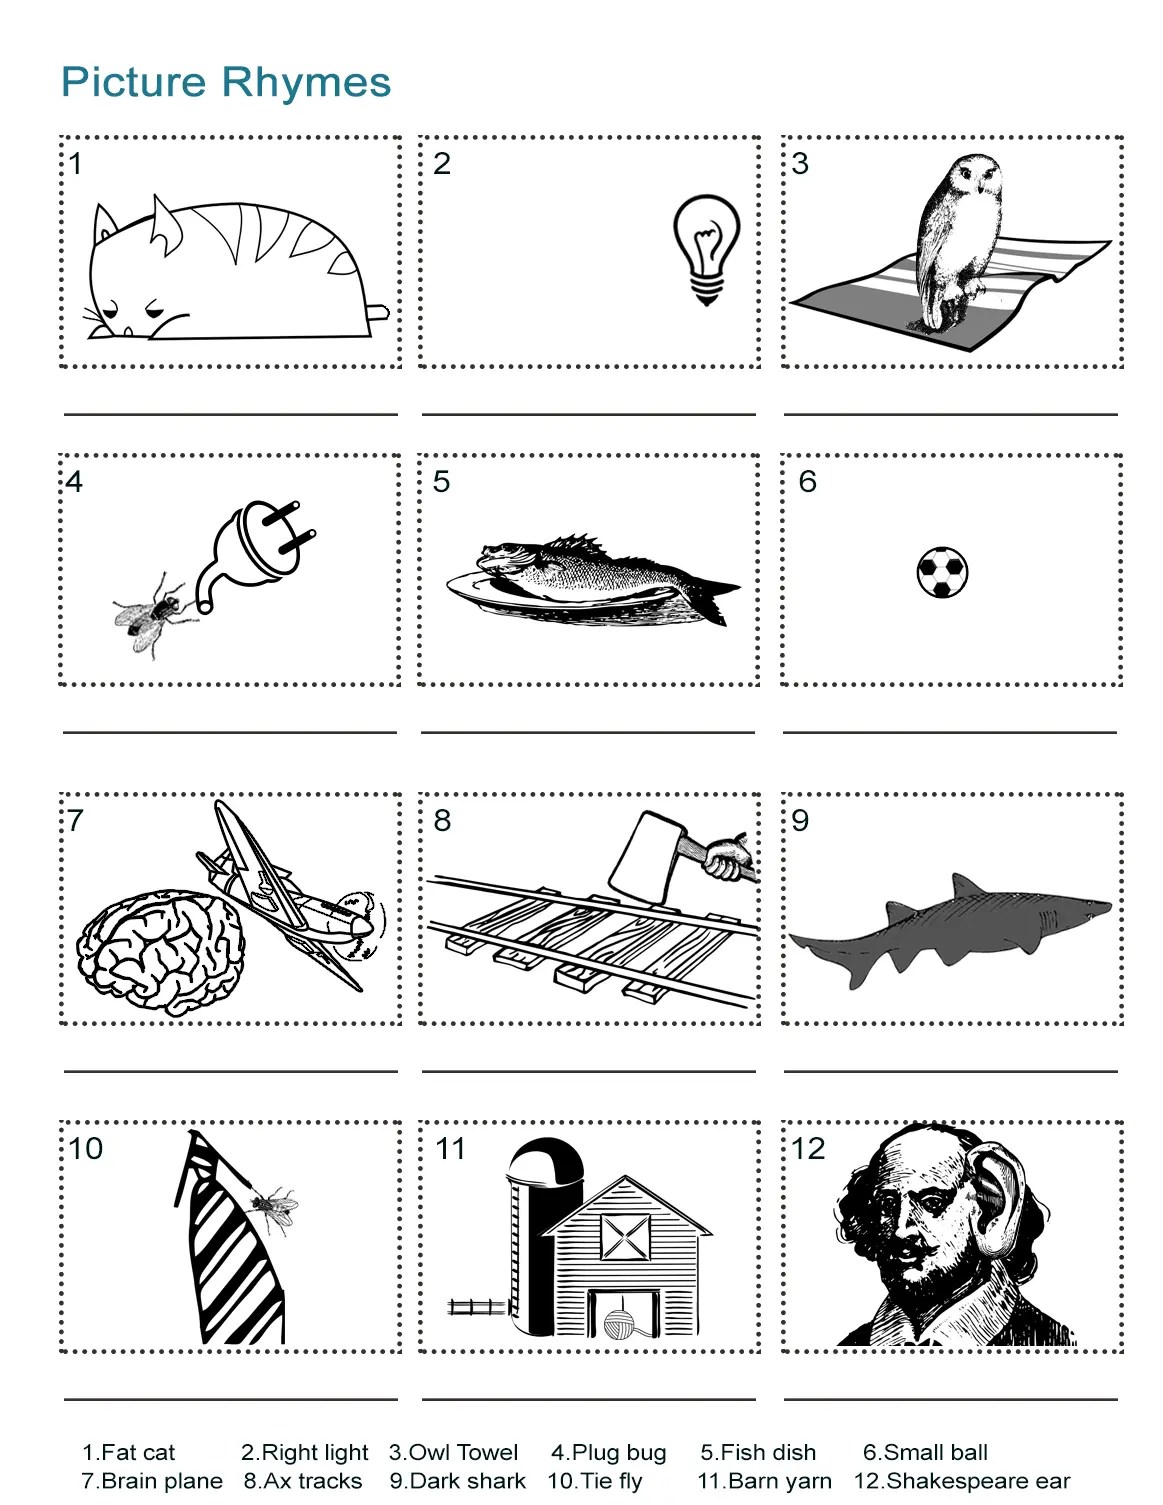 Picture Rhymes Worksheet What Is The Rhyming Word In Each Picture